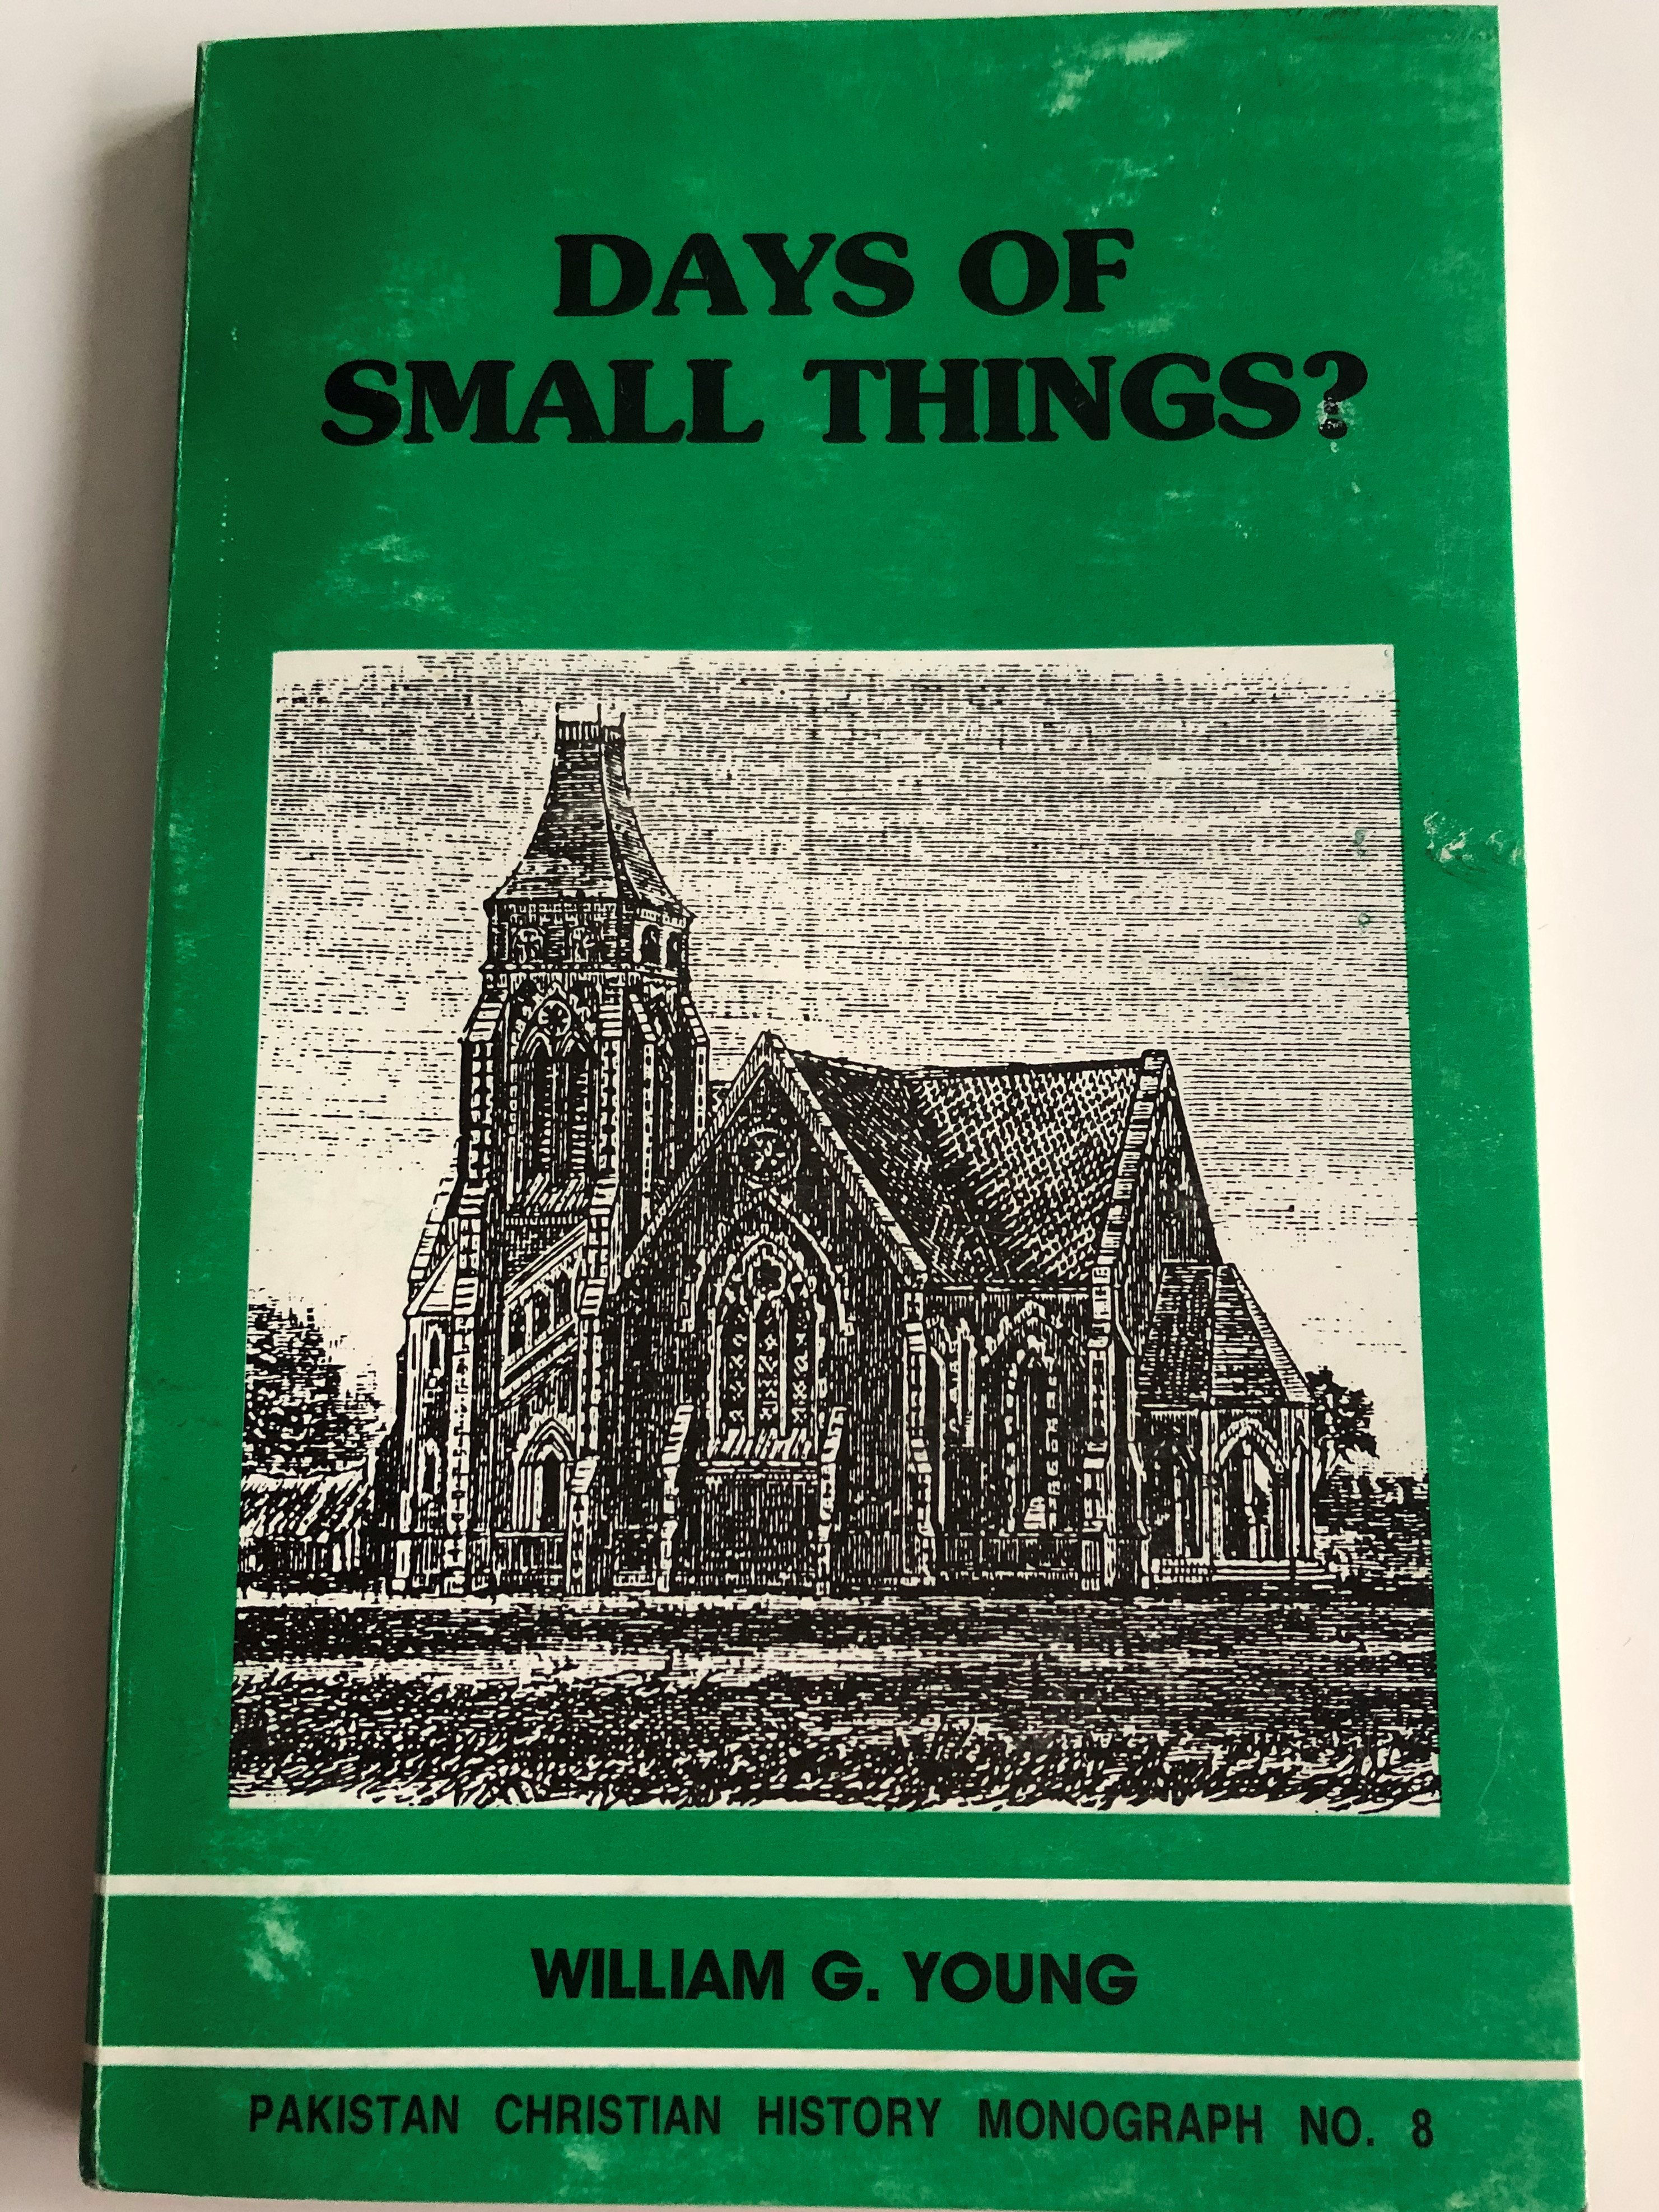 days-of-small-things-by-william-g.-young-pakistan-christian-history-monograph-no.-8-1-.jpg